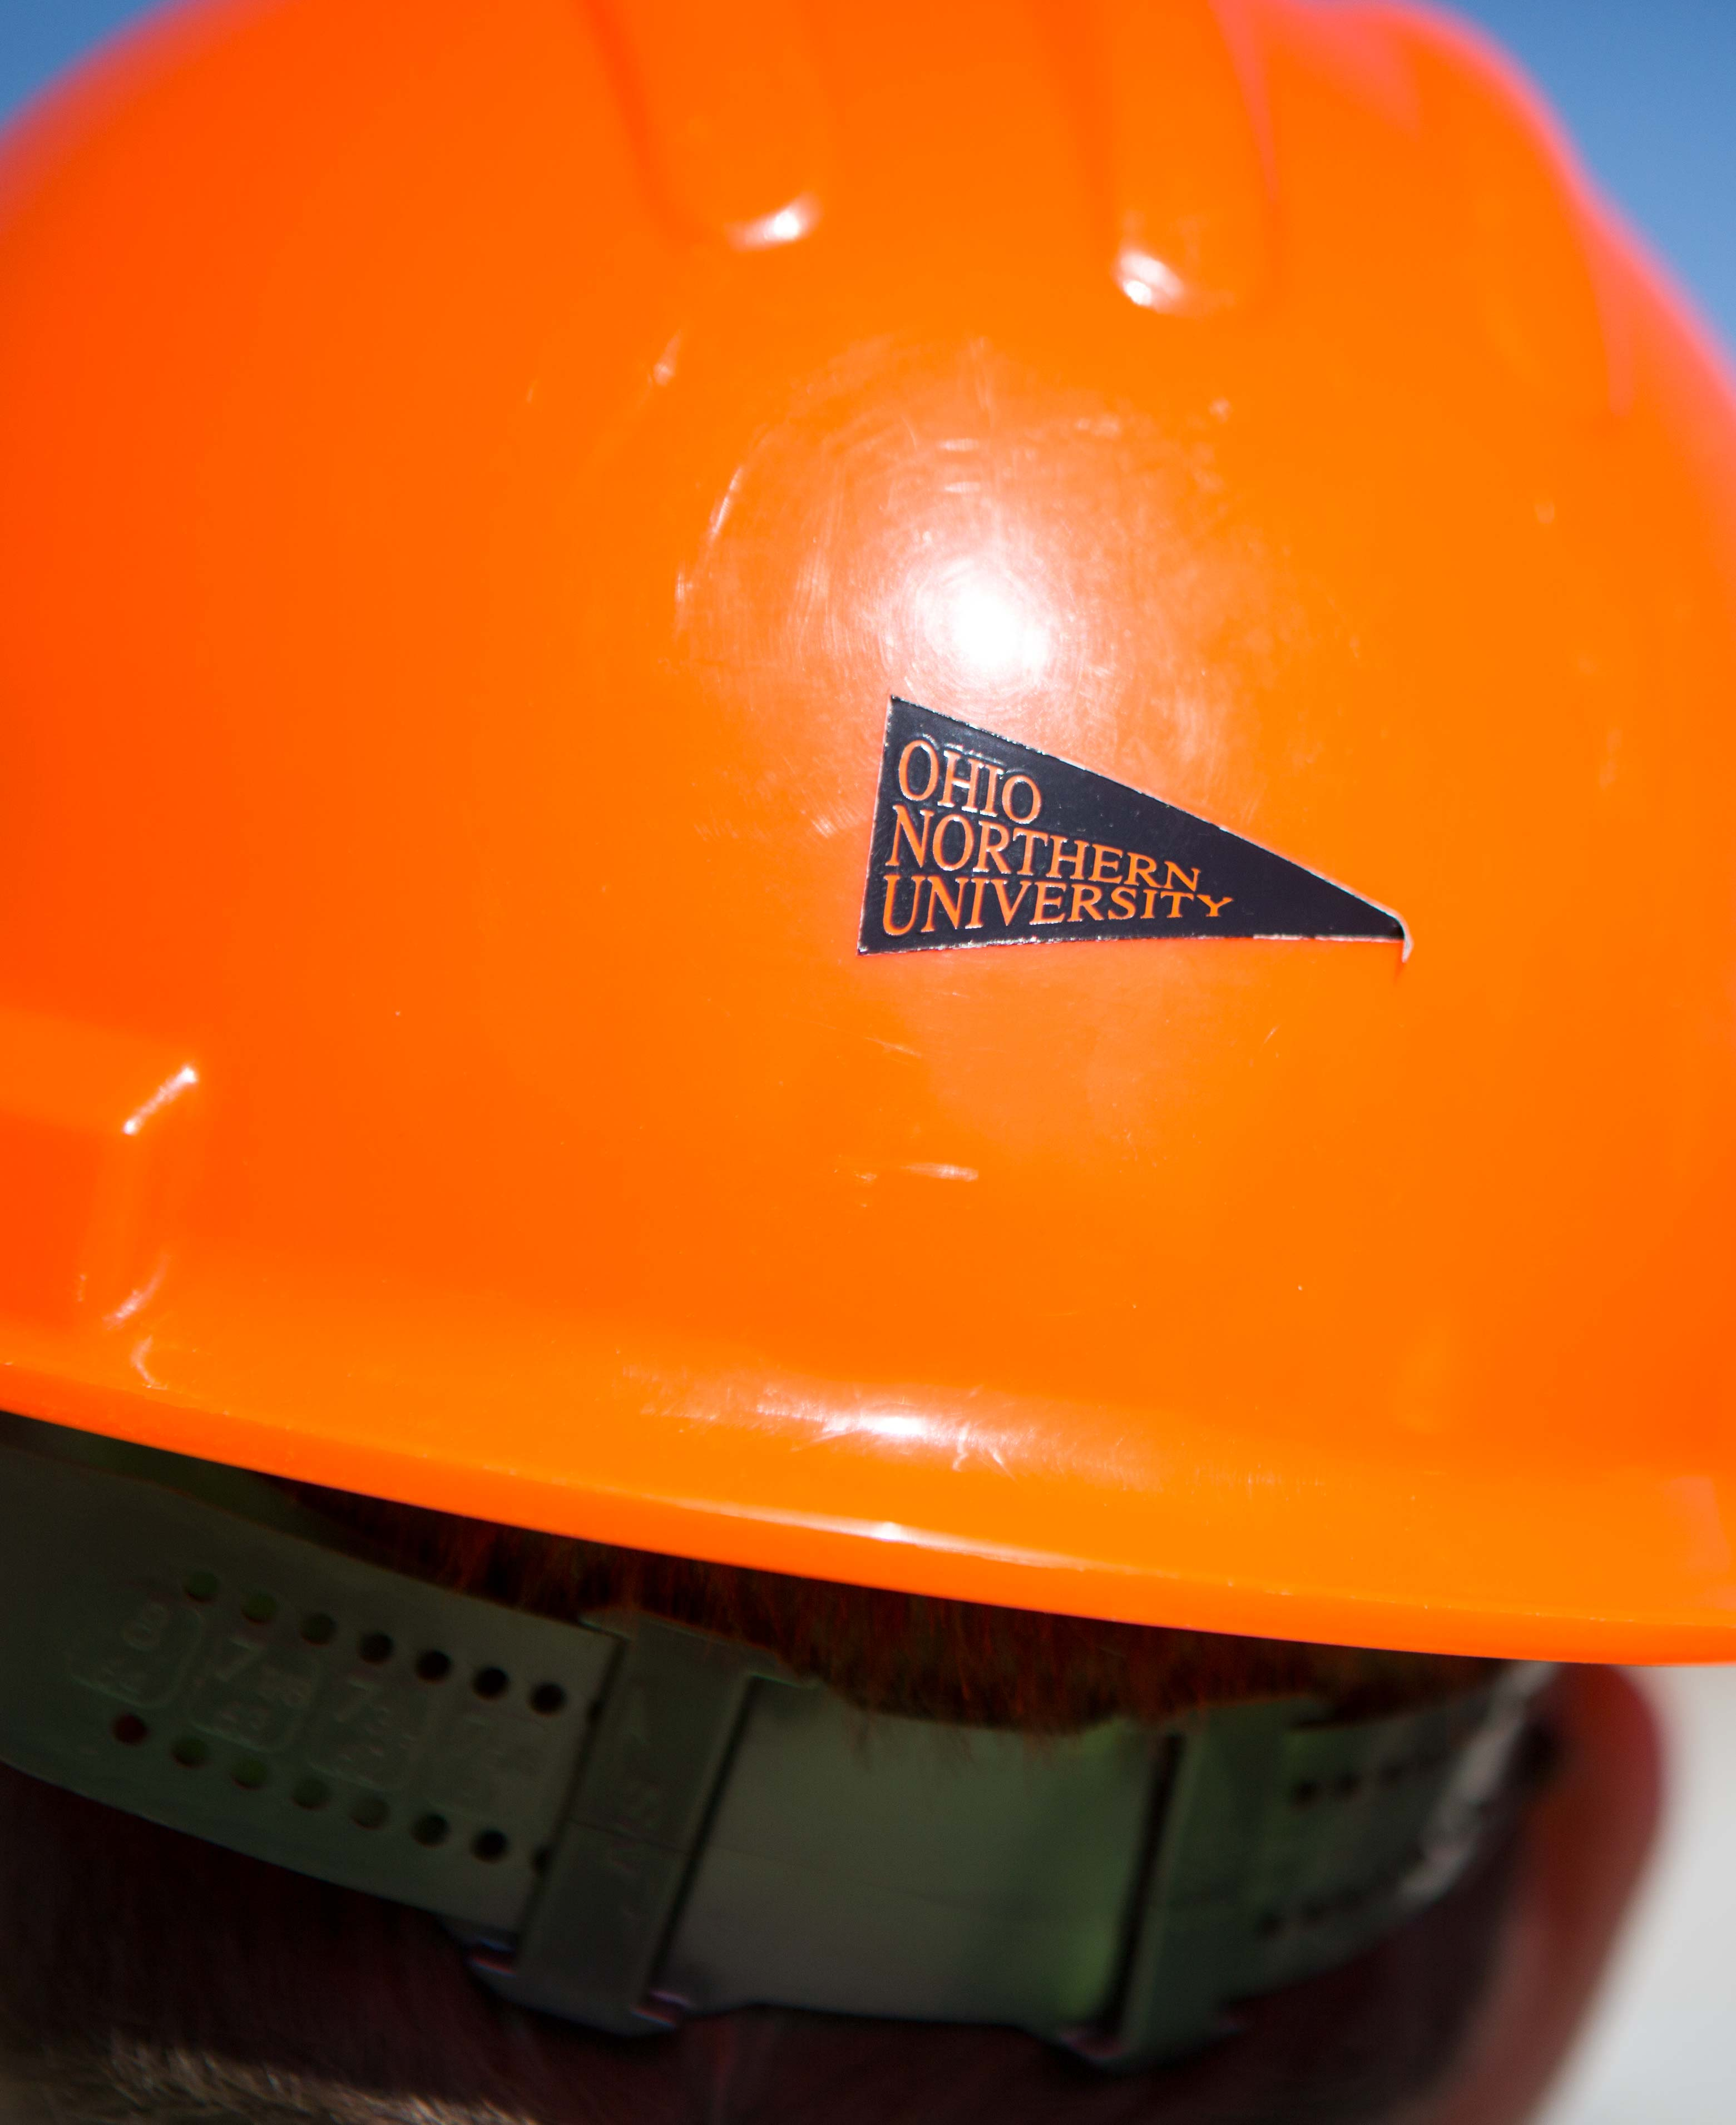 Construction management student in an ONU construction hat